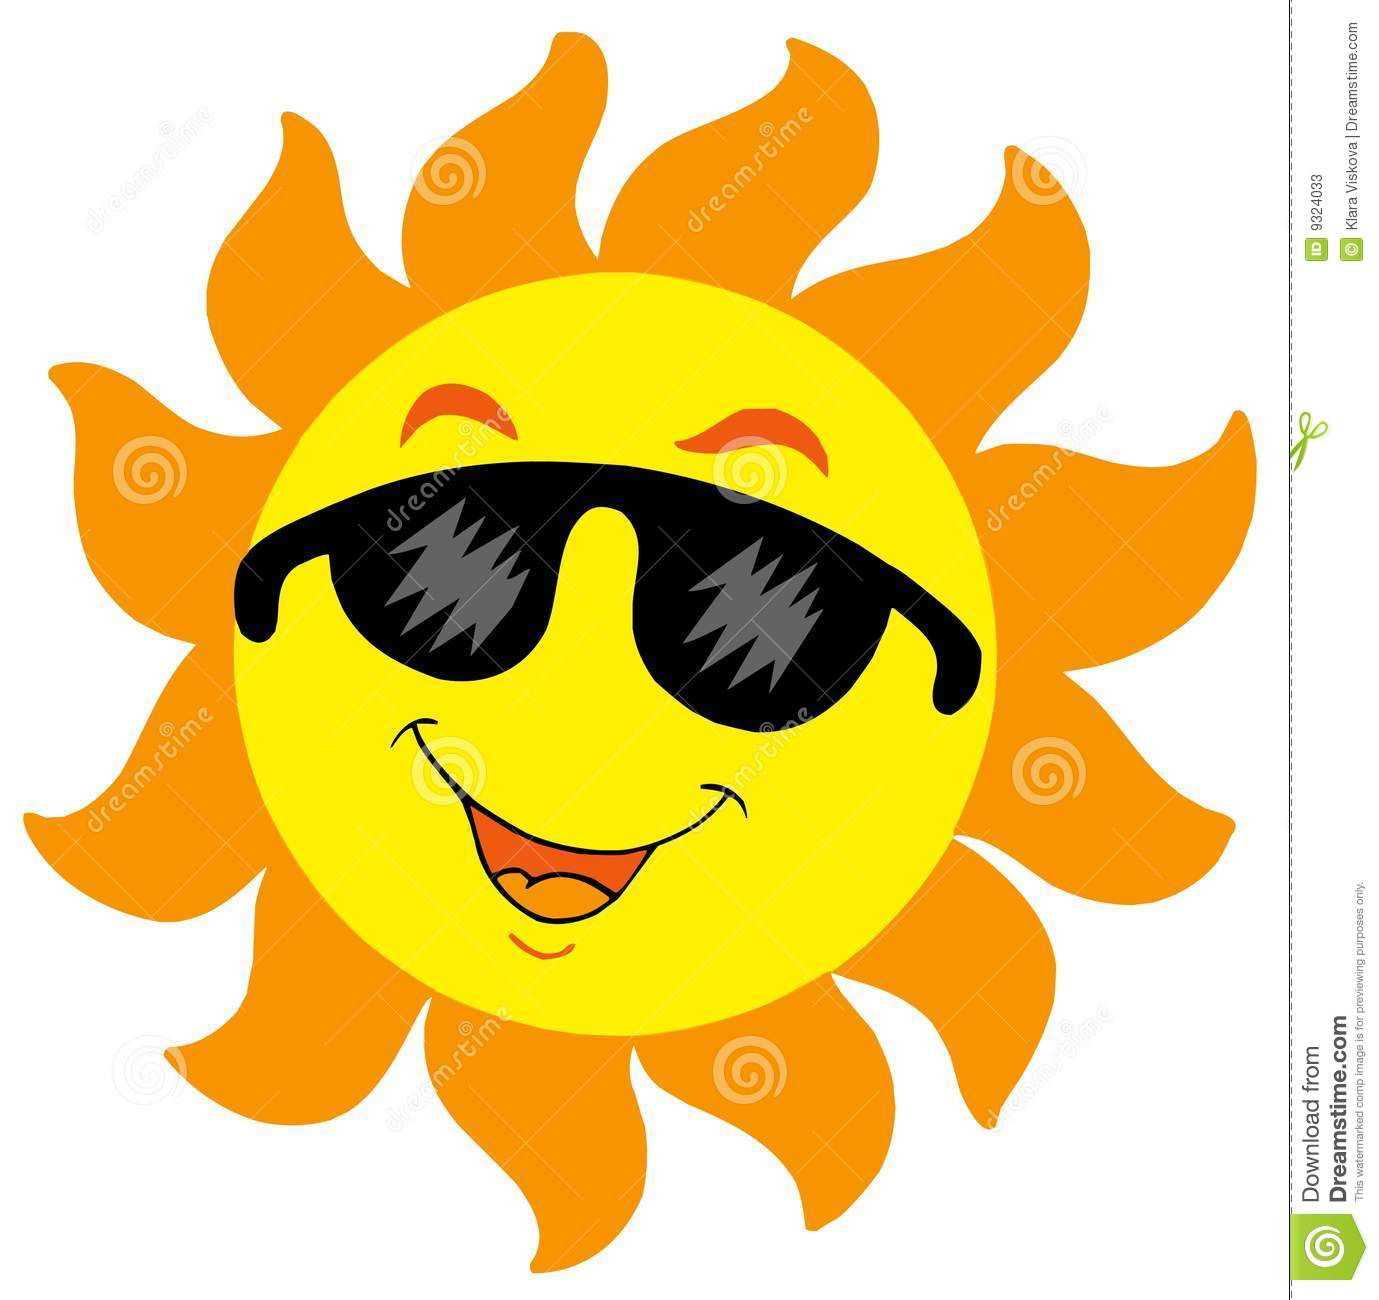 Smiling Sun Stock Photos, Images, & Pictures.